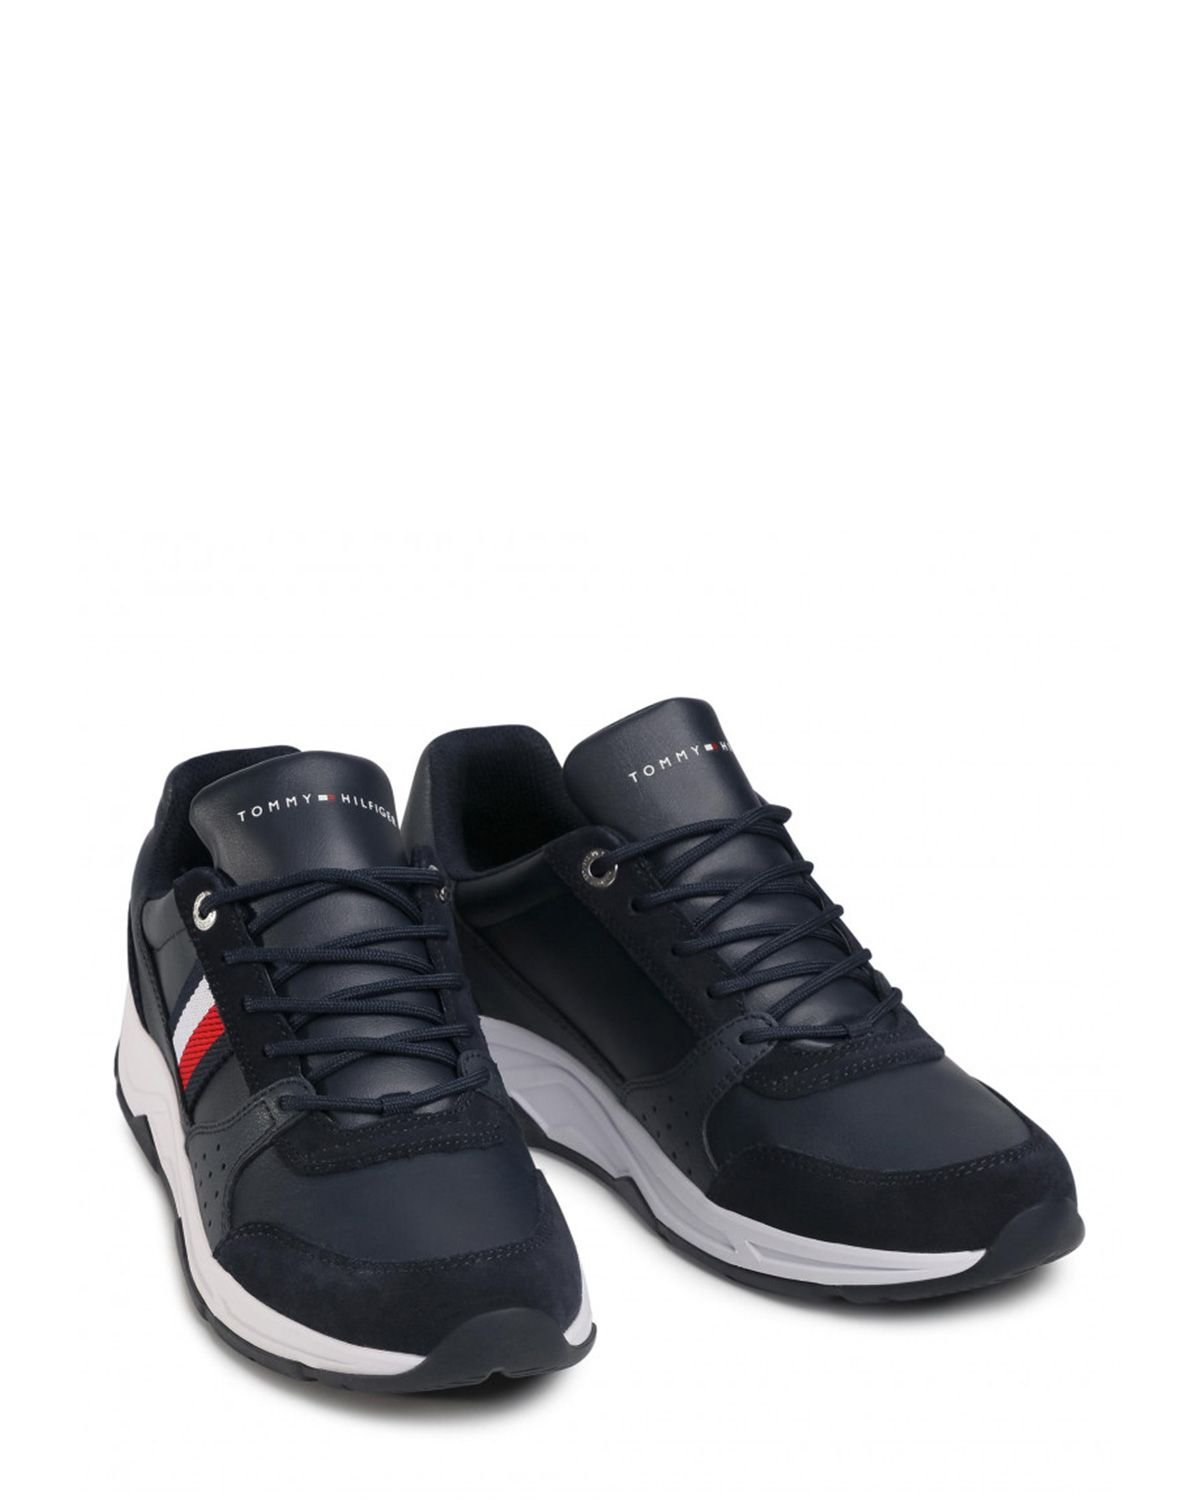 Tommy Hilfiger Fashion Leather Runner Sneakers FM0FM03084 Navy Blue